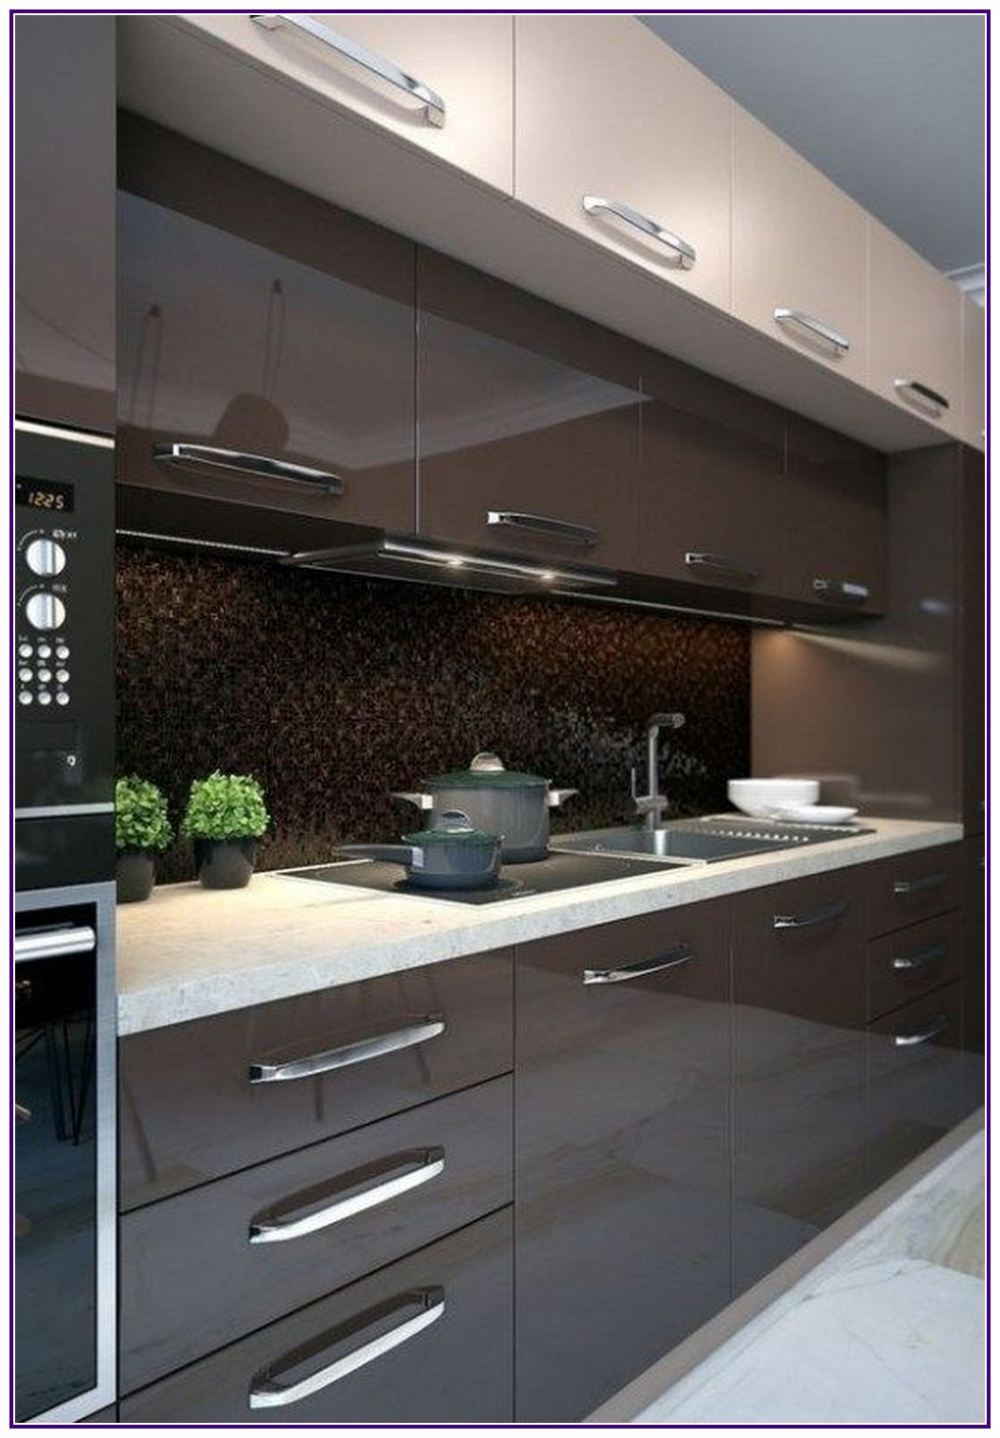 11 Most Beautiful Modern Kitchen Cabinets Ideas 00001 In 2020